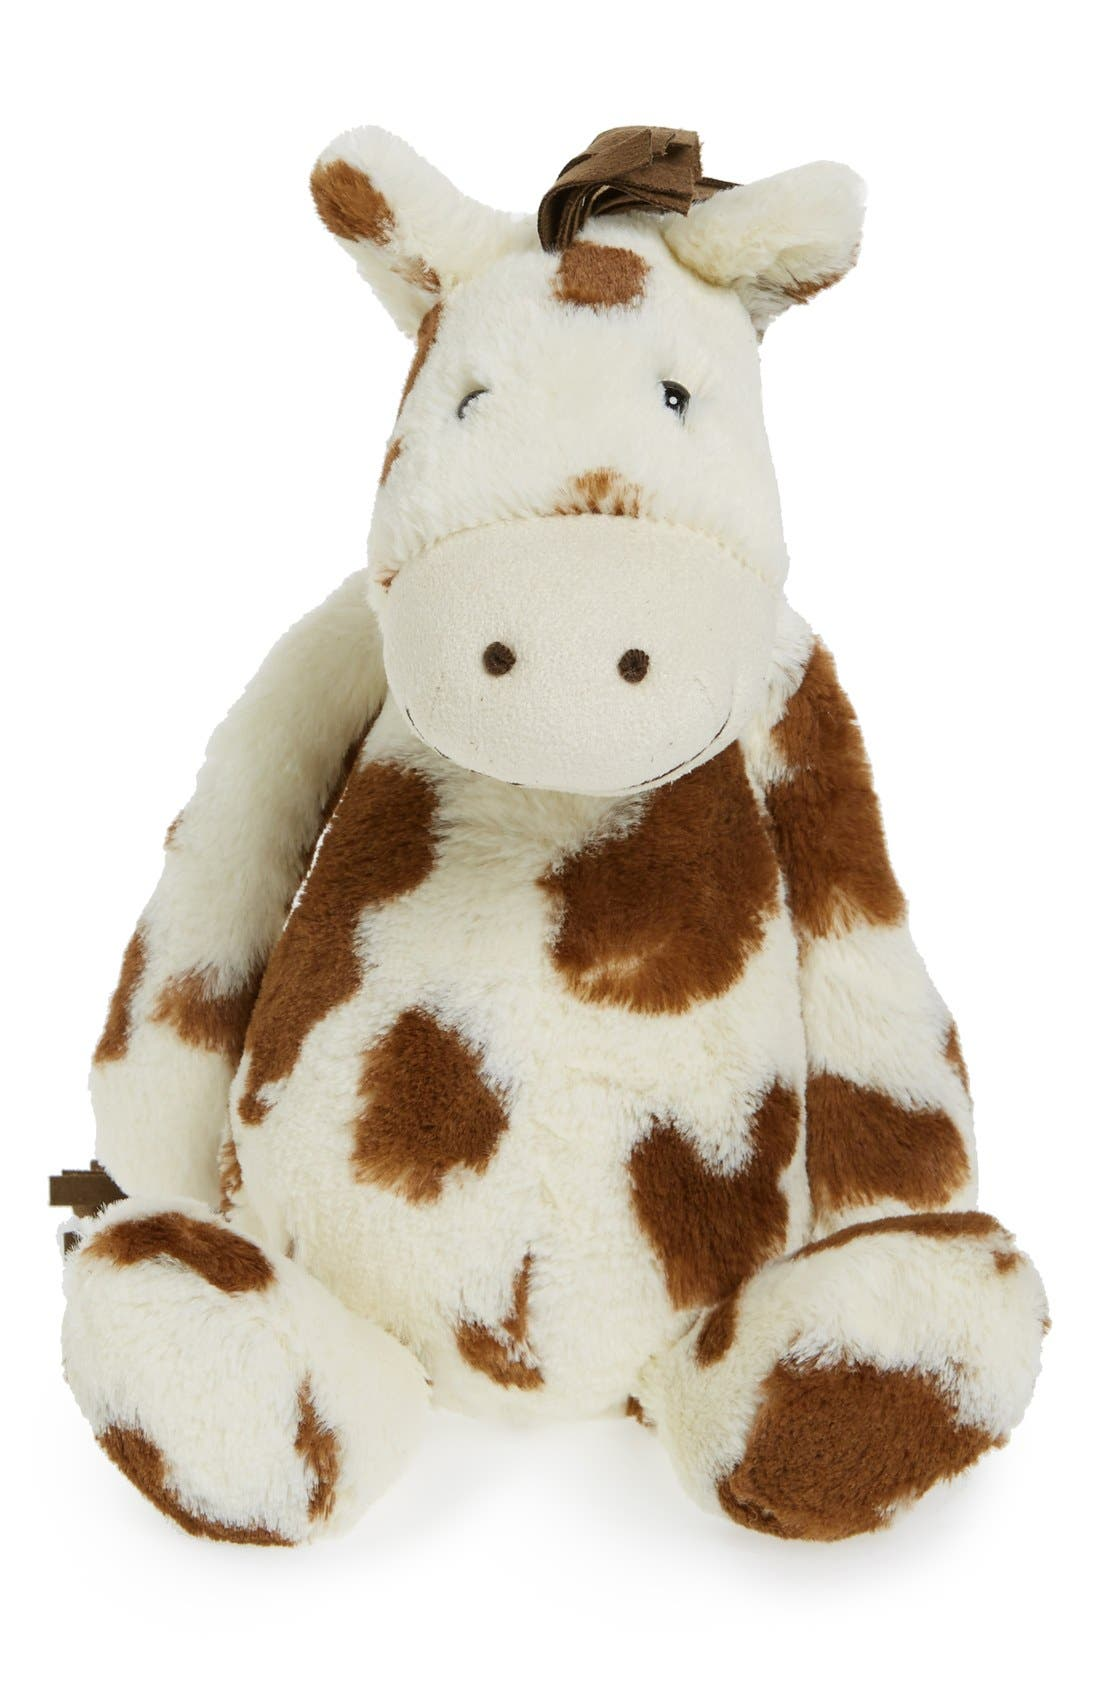 Alternate Image 1 Selected - Jellycat 'Medium Bashful Pony' Stuffed Animal